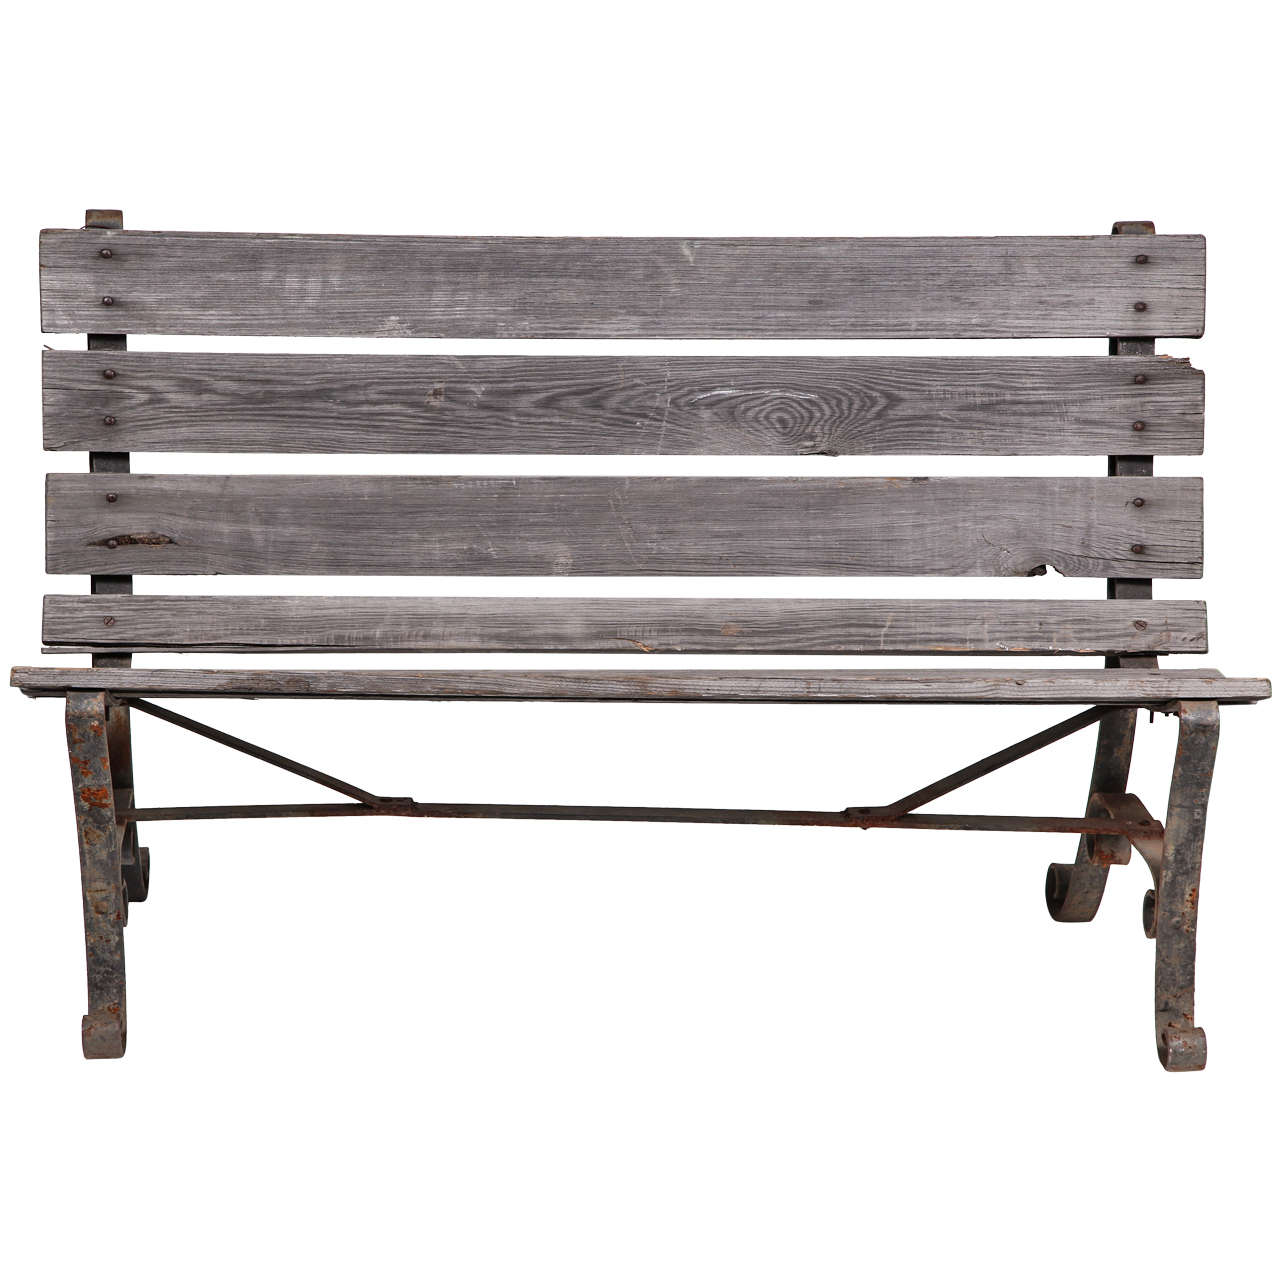 Modern Park Benches Part - 42: Old Wrought Iron Two Seater Park Bench 1